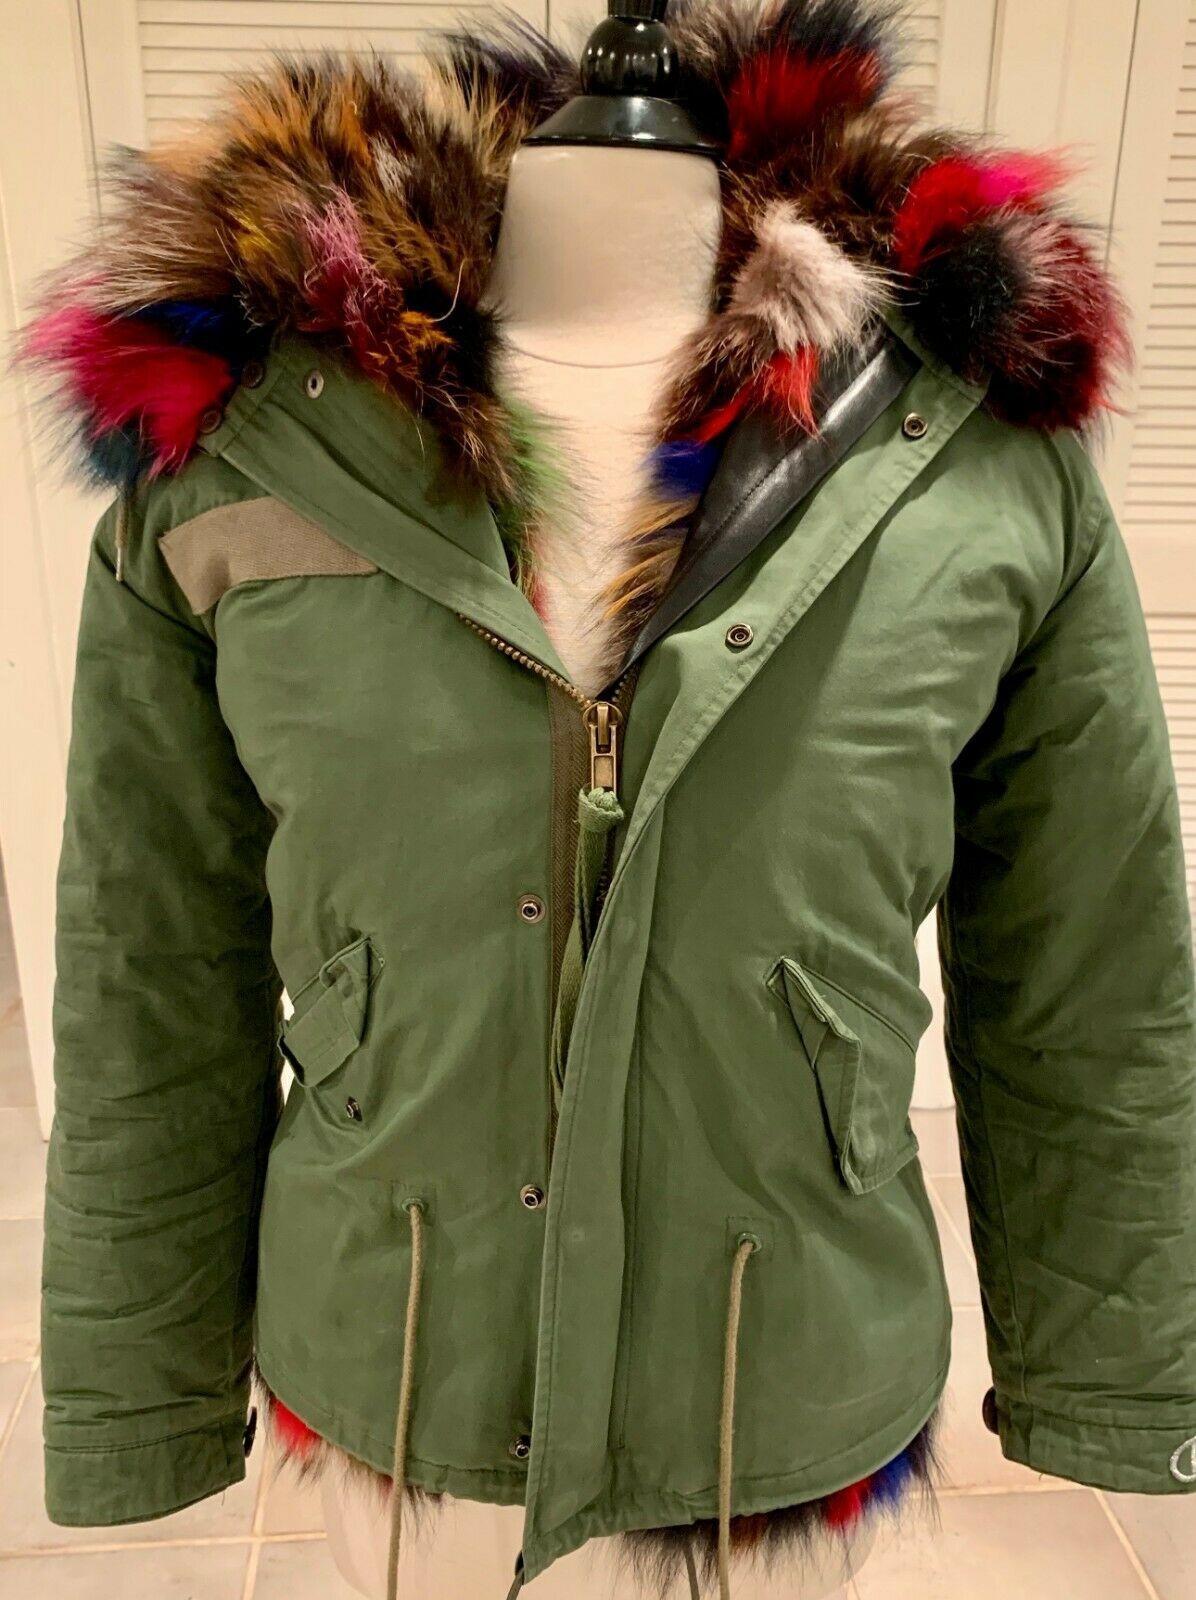 D. Damiani NY Multi-Color Fur Lined Coat Small - image 1